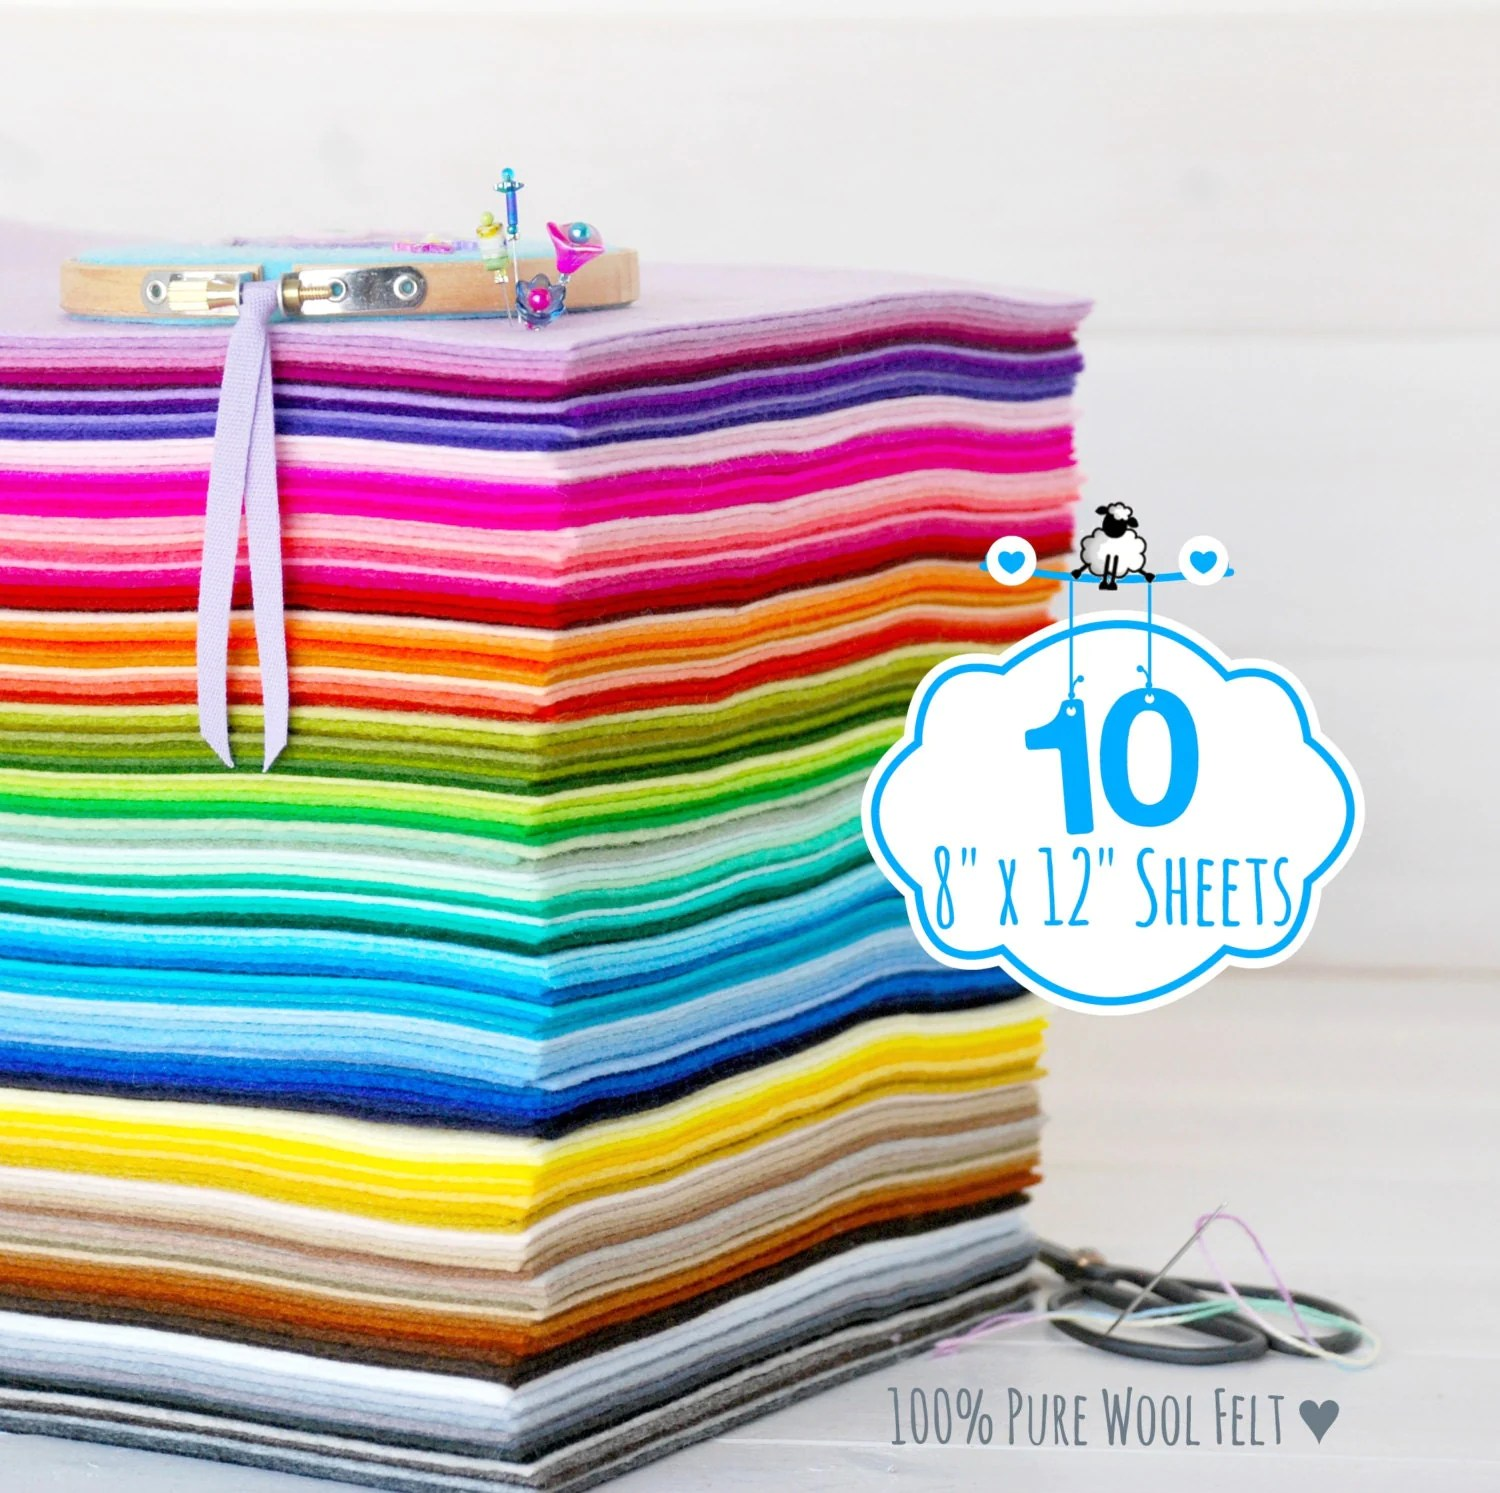 100 Wool Felt Sheets 10 Sheets Of 8 X 12